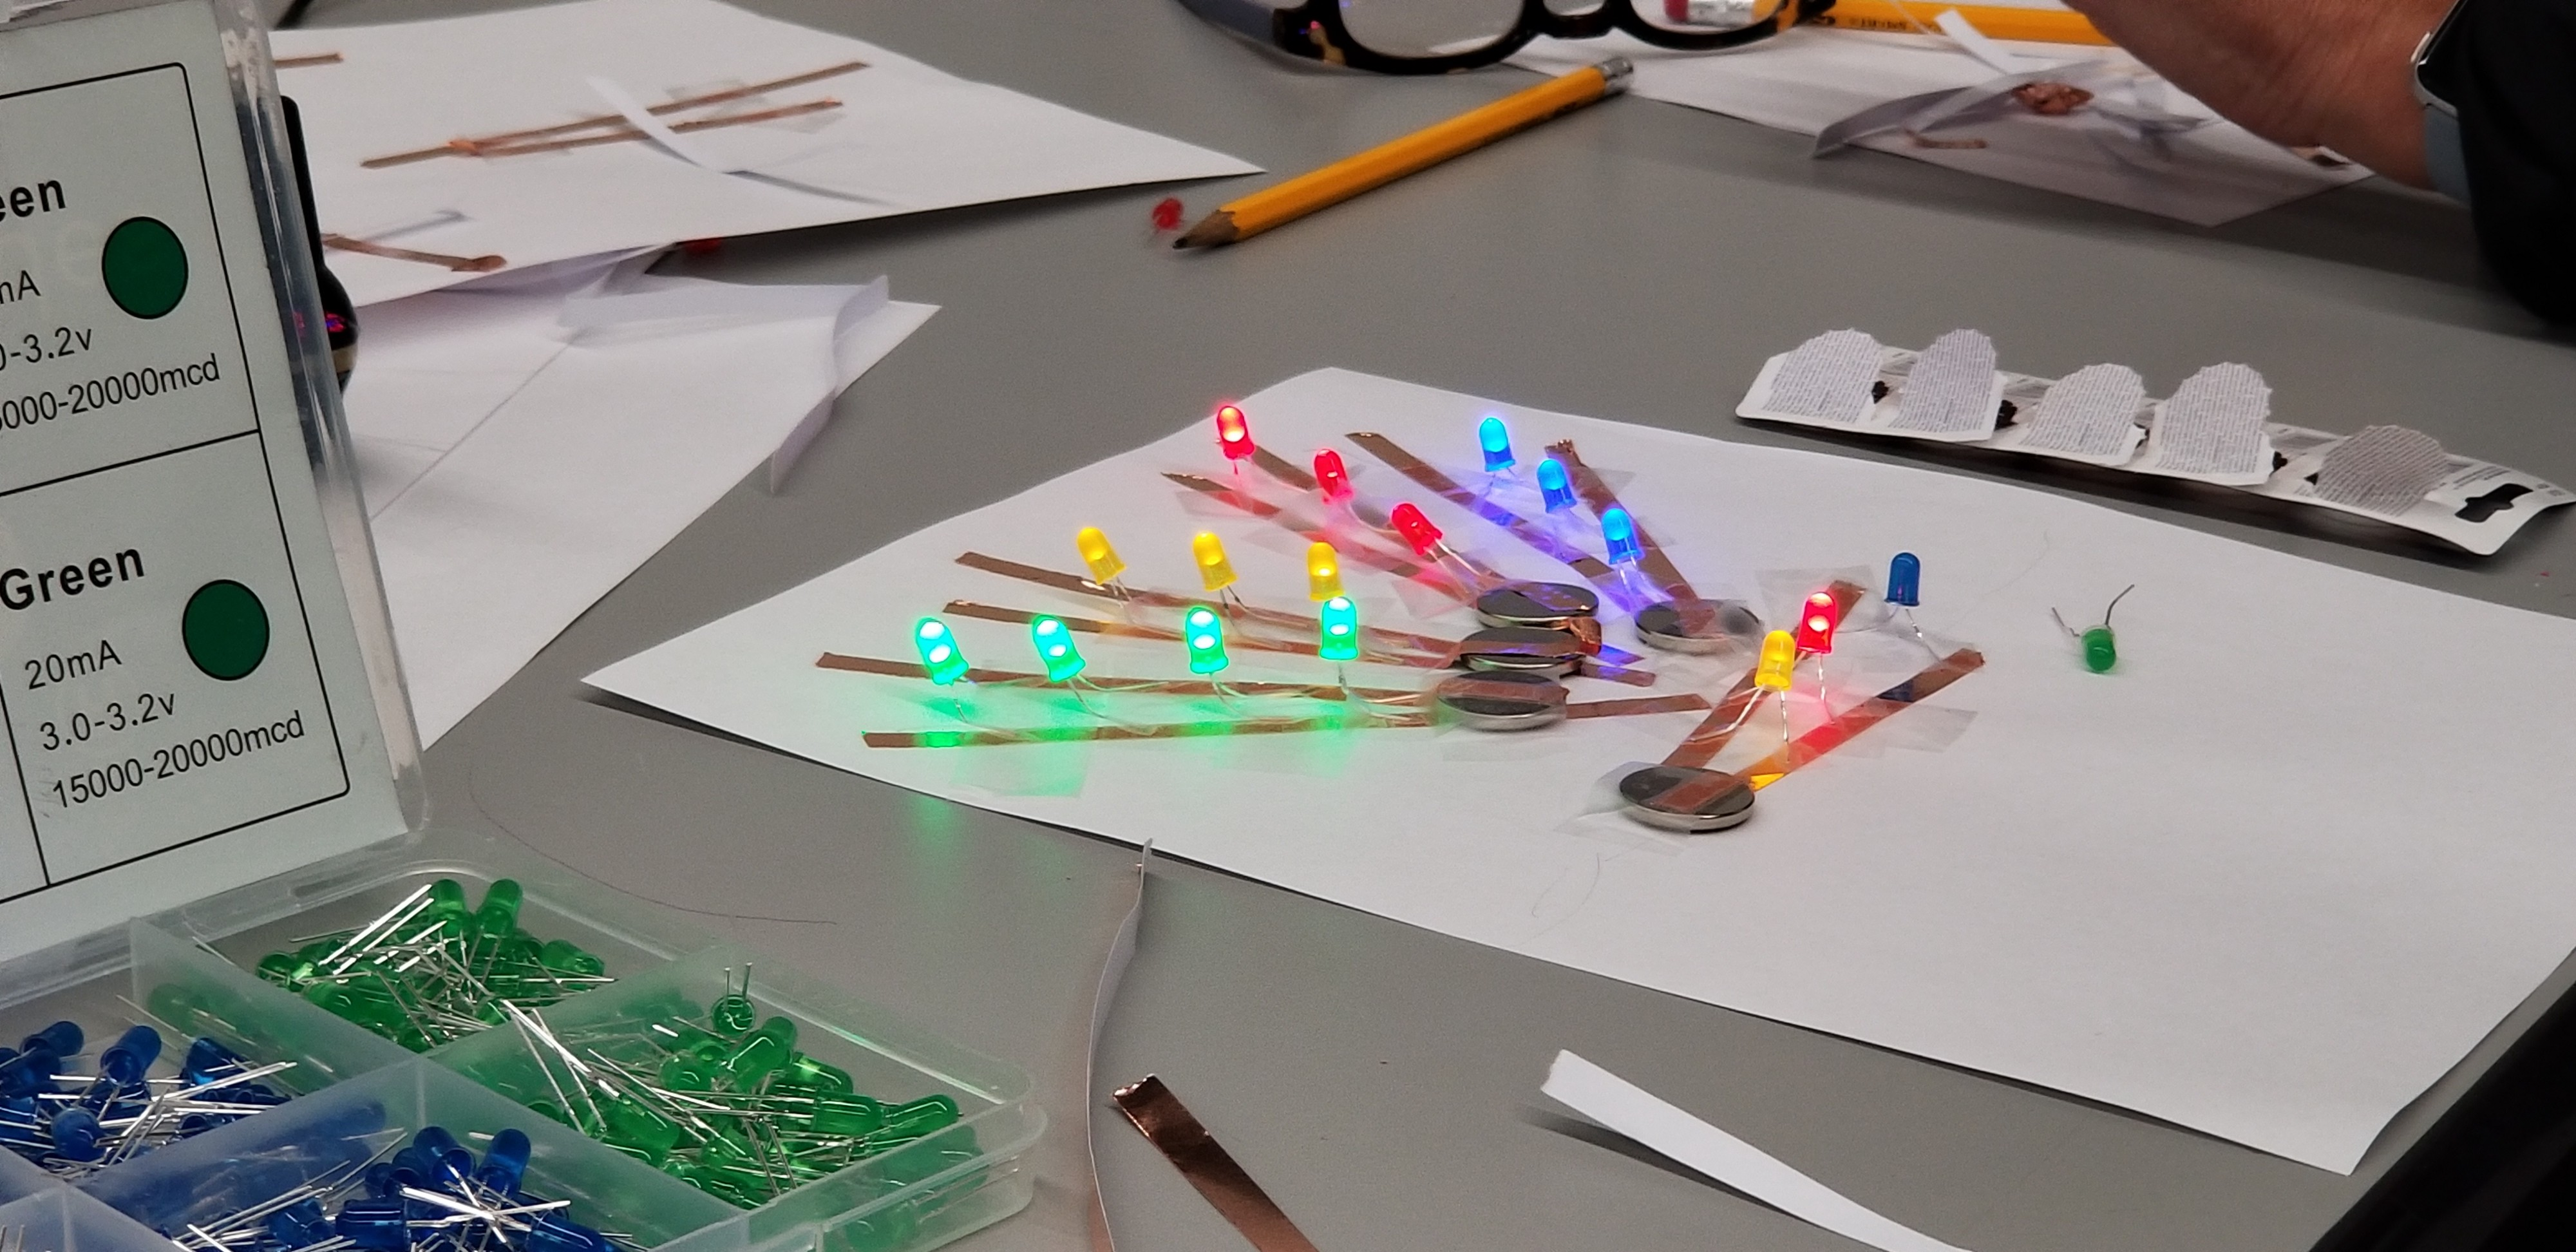 My note card in Paper Circuitry